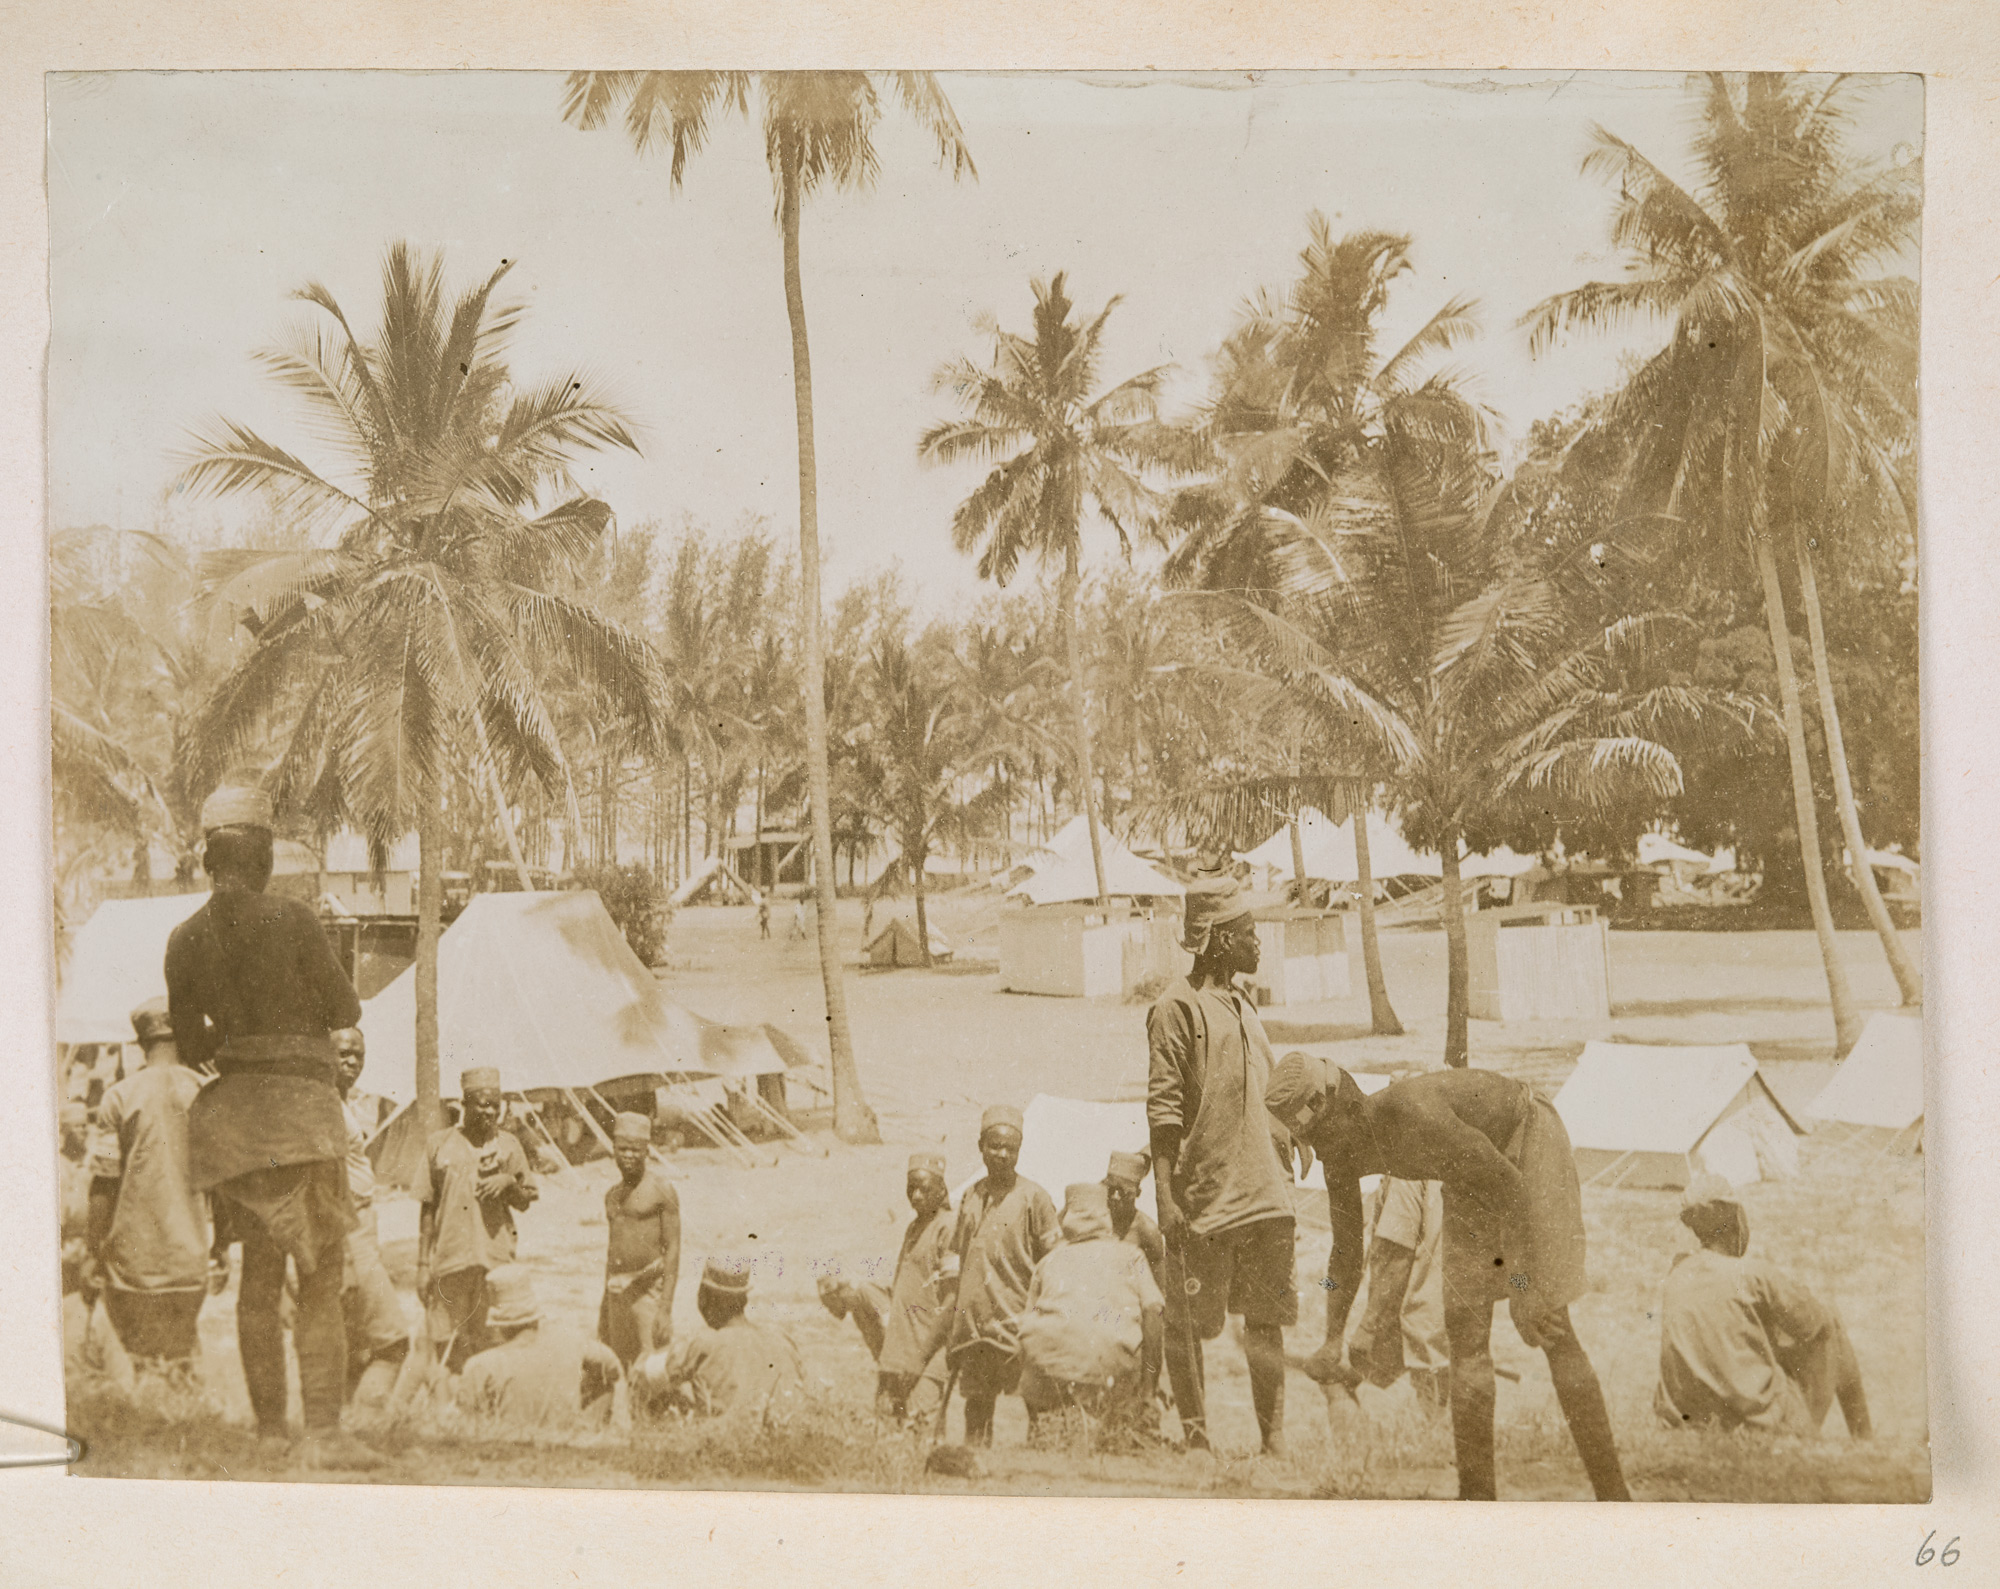 Photograph of East African Campaign